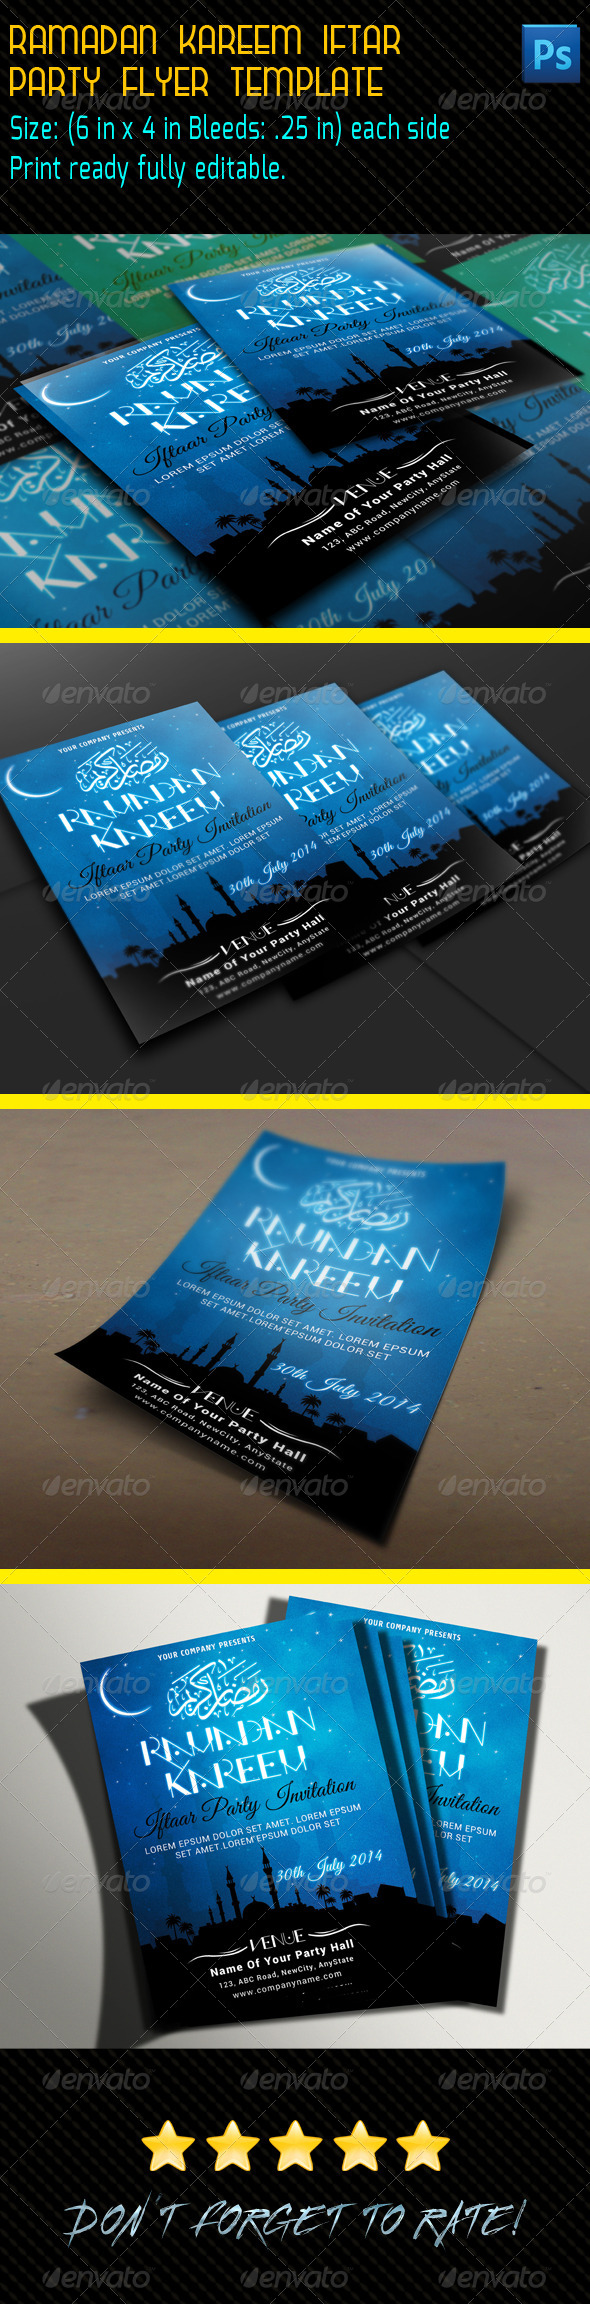 GraphicRiver Ramadan Kareem Iftar Party Flyer 8098182